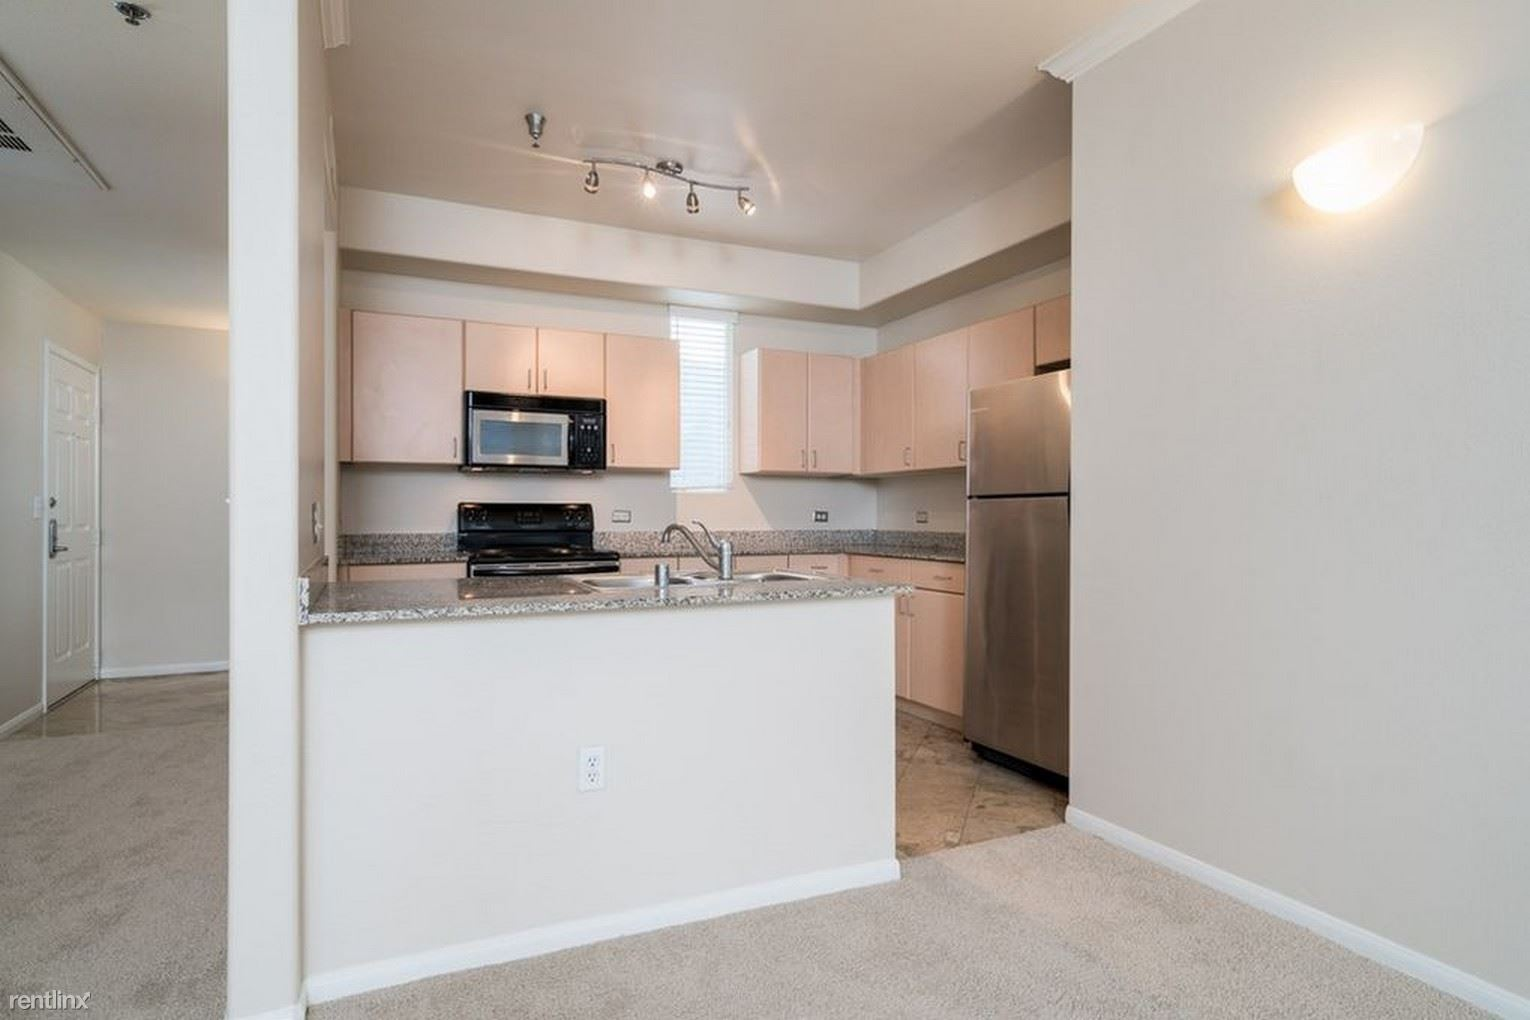 1643 6th Ave, San Diego, CA - $800 USD/ month